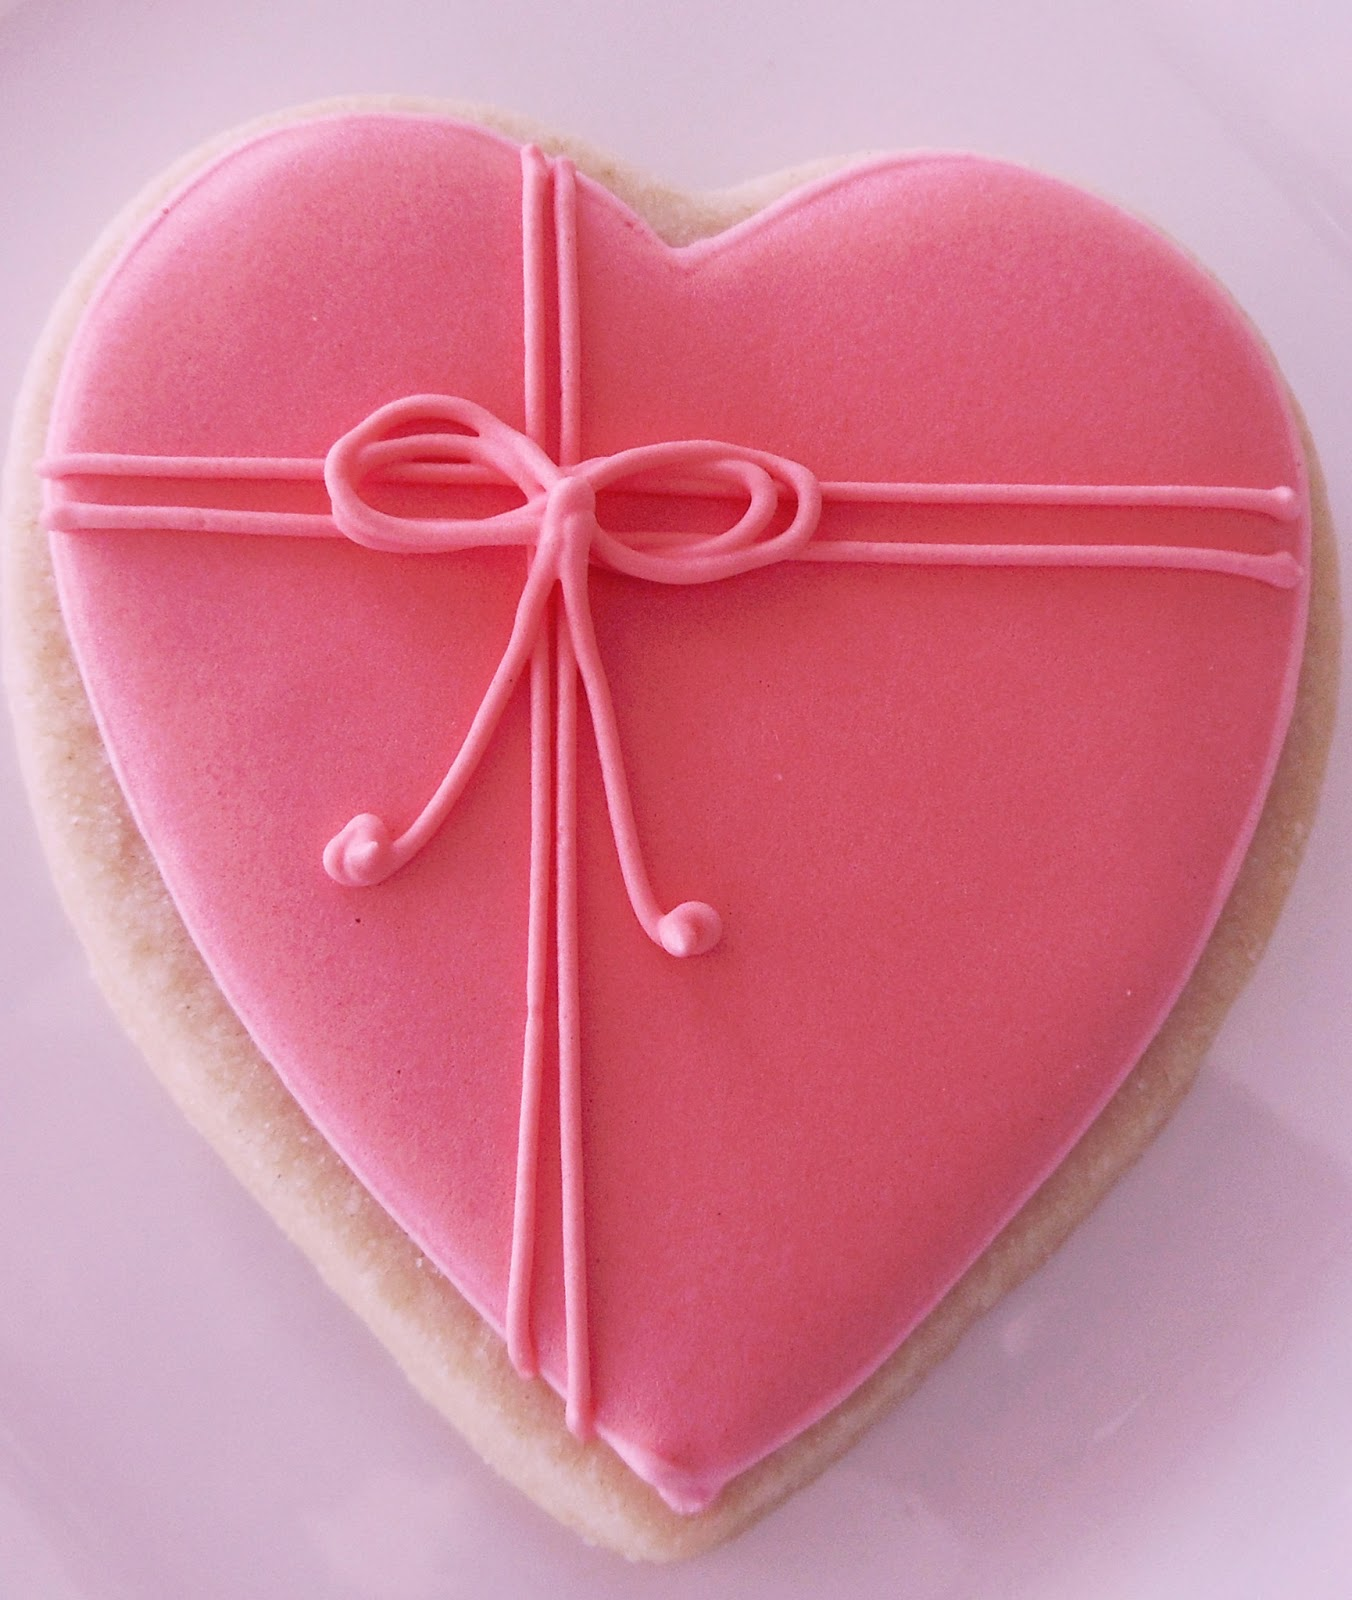 My Cookie Clinic: HEART COOKIES/ Box of Chocolates